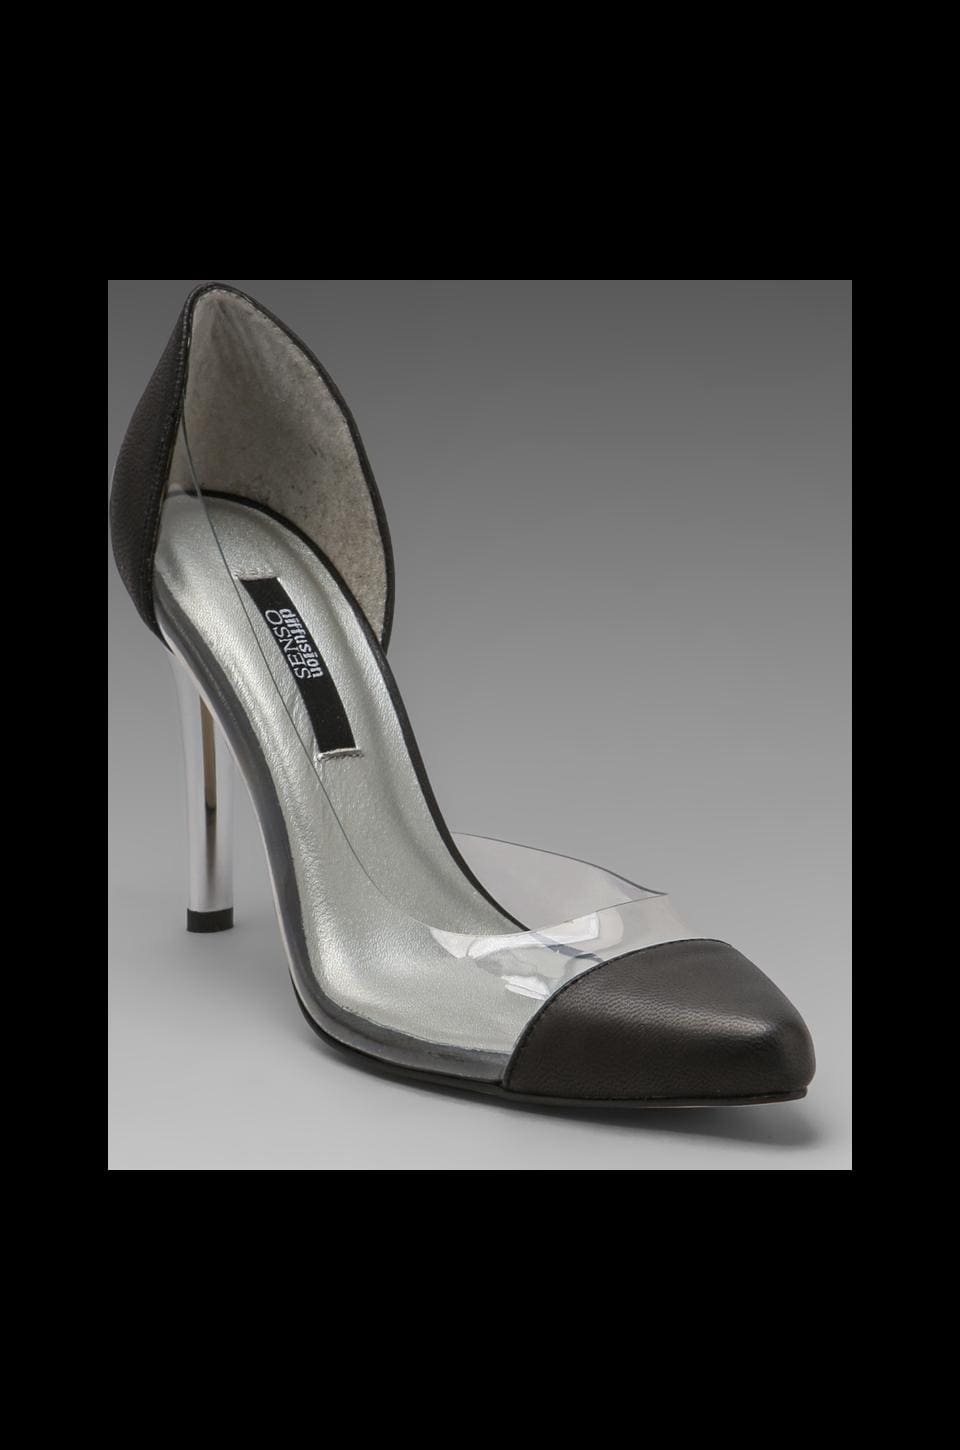 SENSO Yugo Pump in Black/Clear